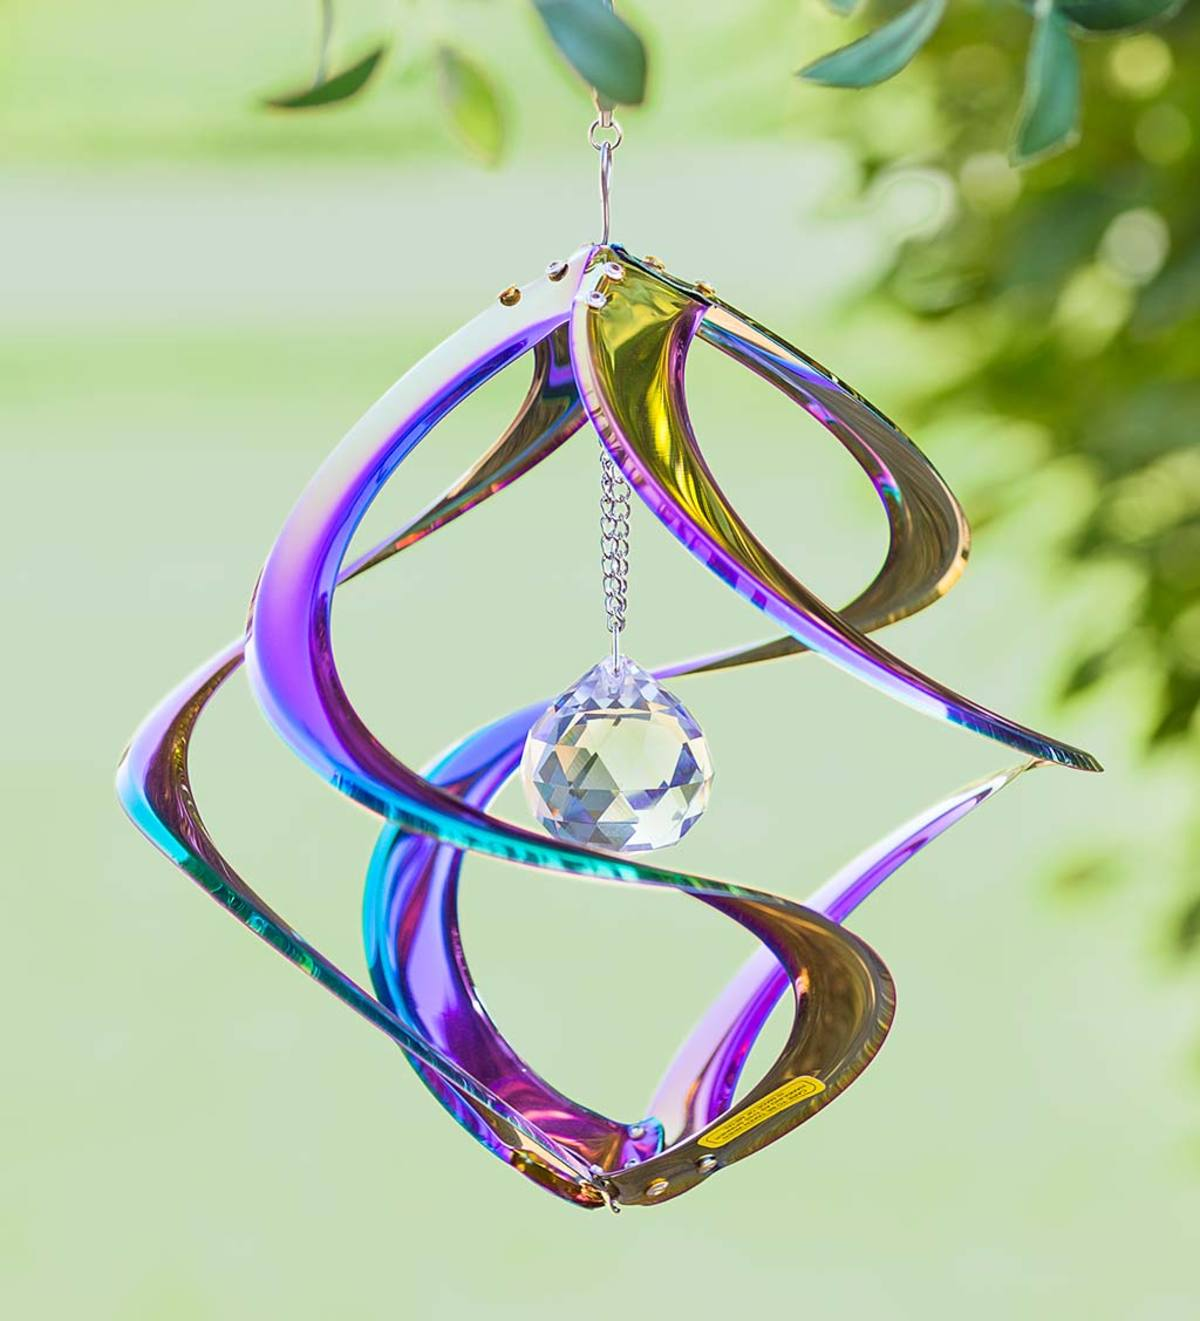 Hanging Iridescent Metal Spiral Wind Spinner with Clear Crystal Center